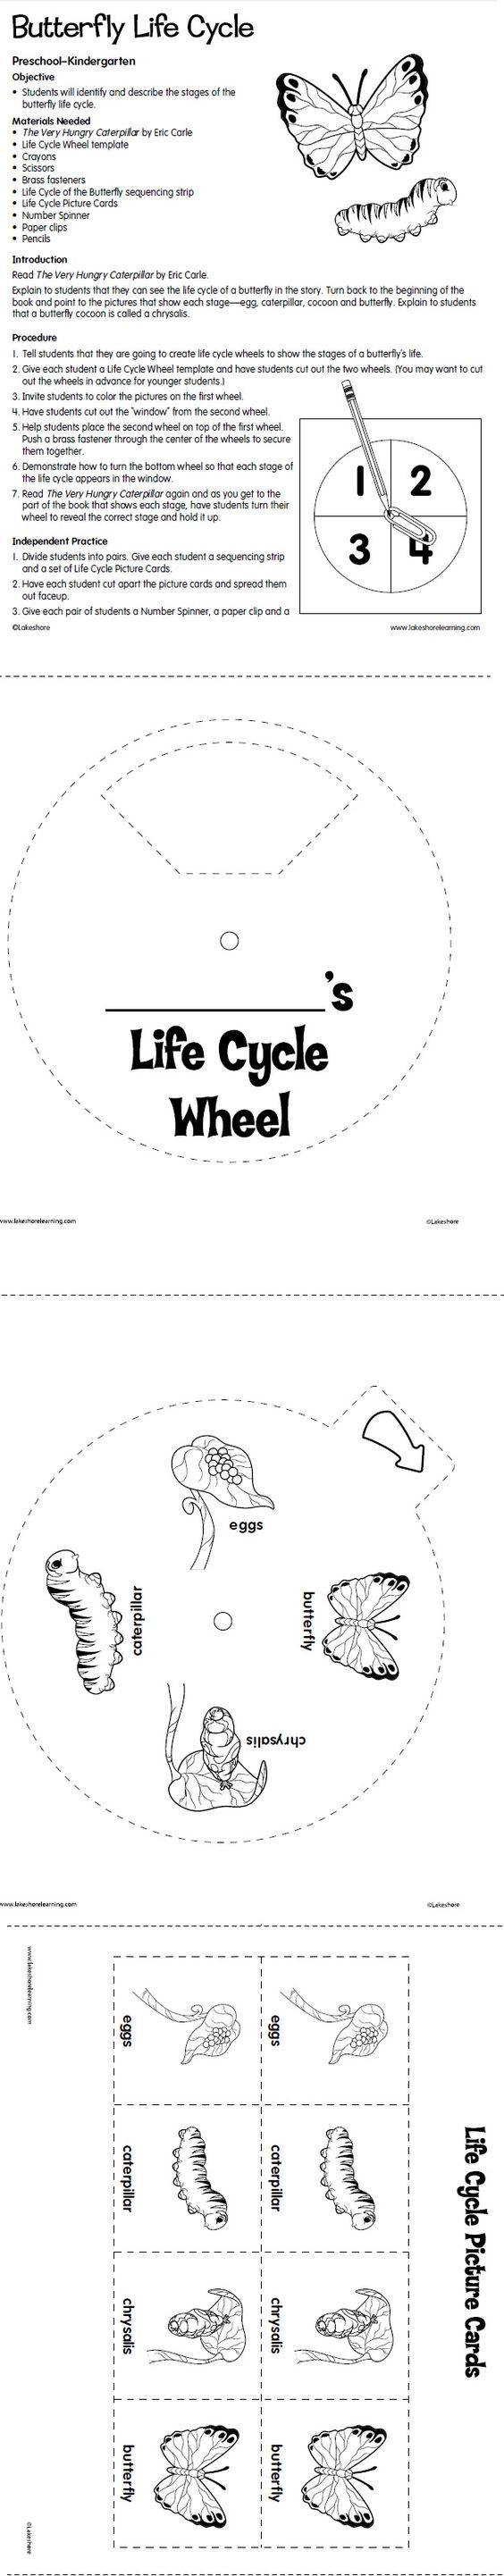 lesson plan life cycle of butterfly This butterfly life cycle lesson plan is suitable for kindergarten students describe and state the four stages of the life cycle of a butterfly for this life cycle lesson plan, students copy words and pictures from the life cycle and then identify each stage.